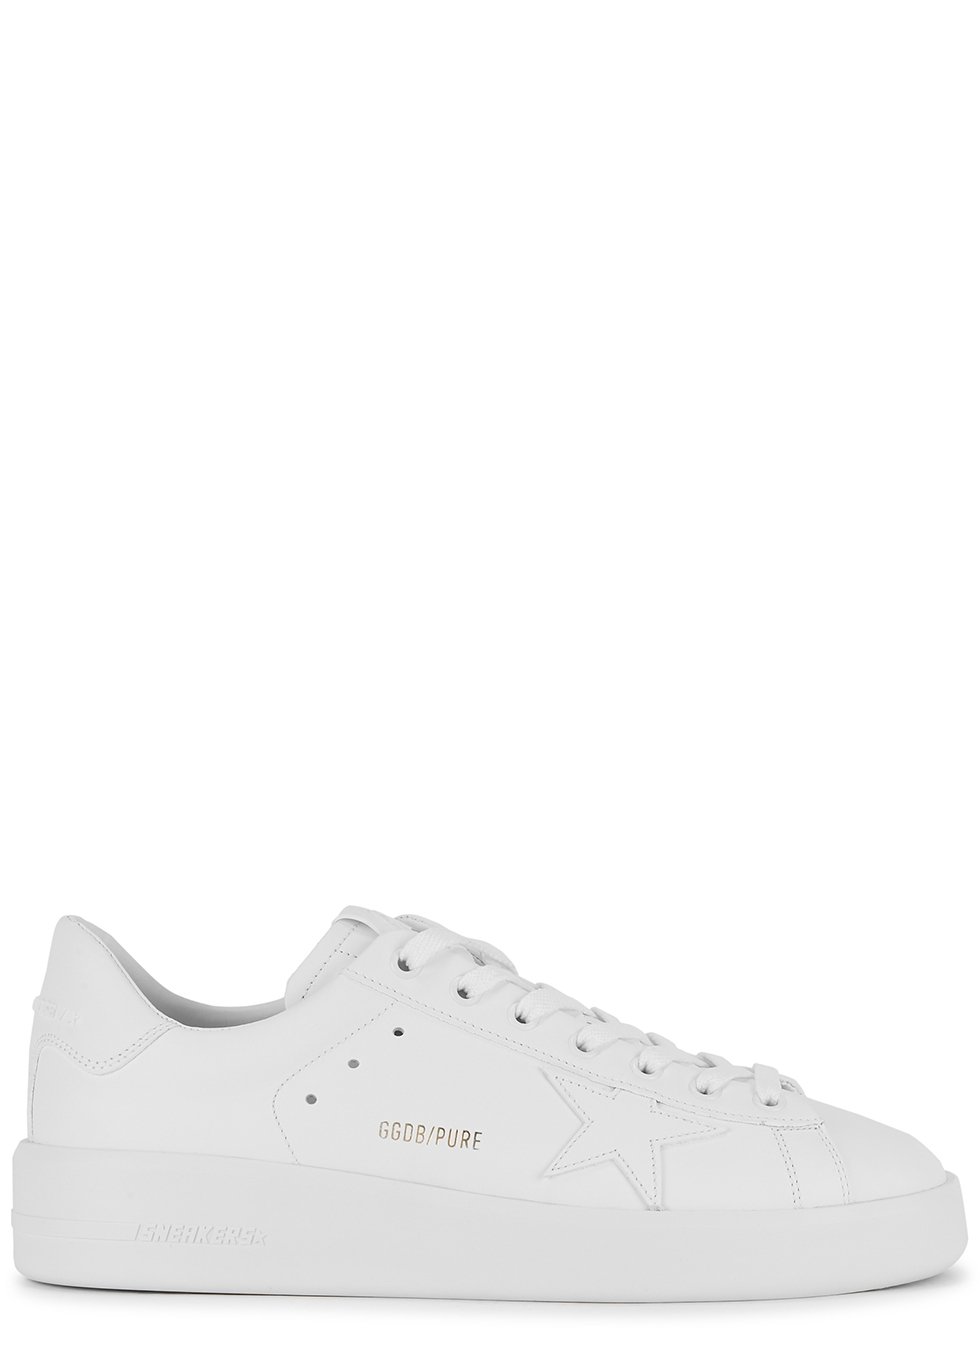 pure leather sneakers